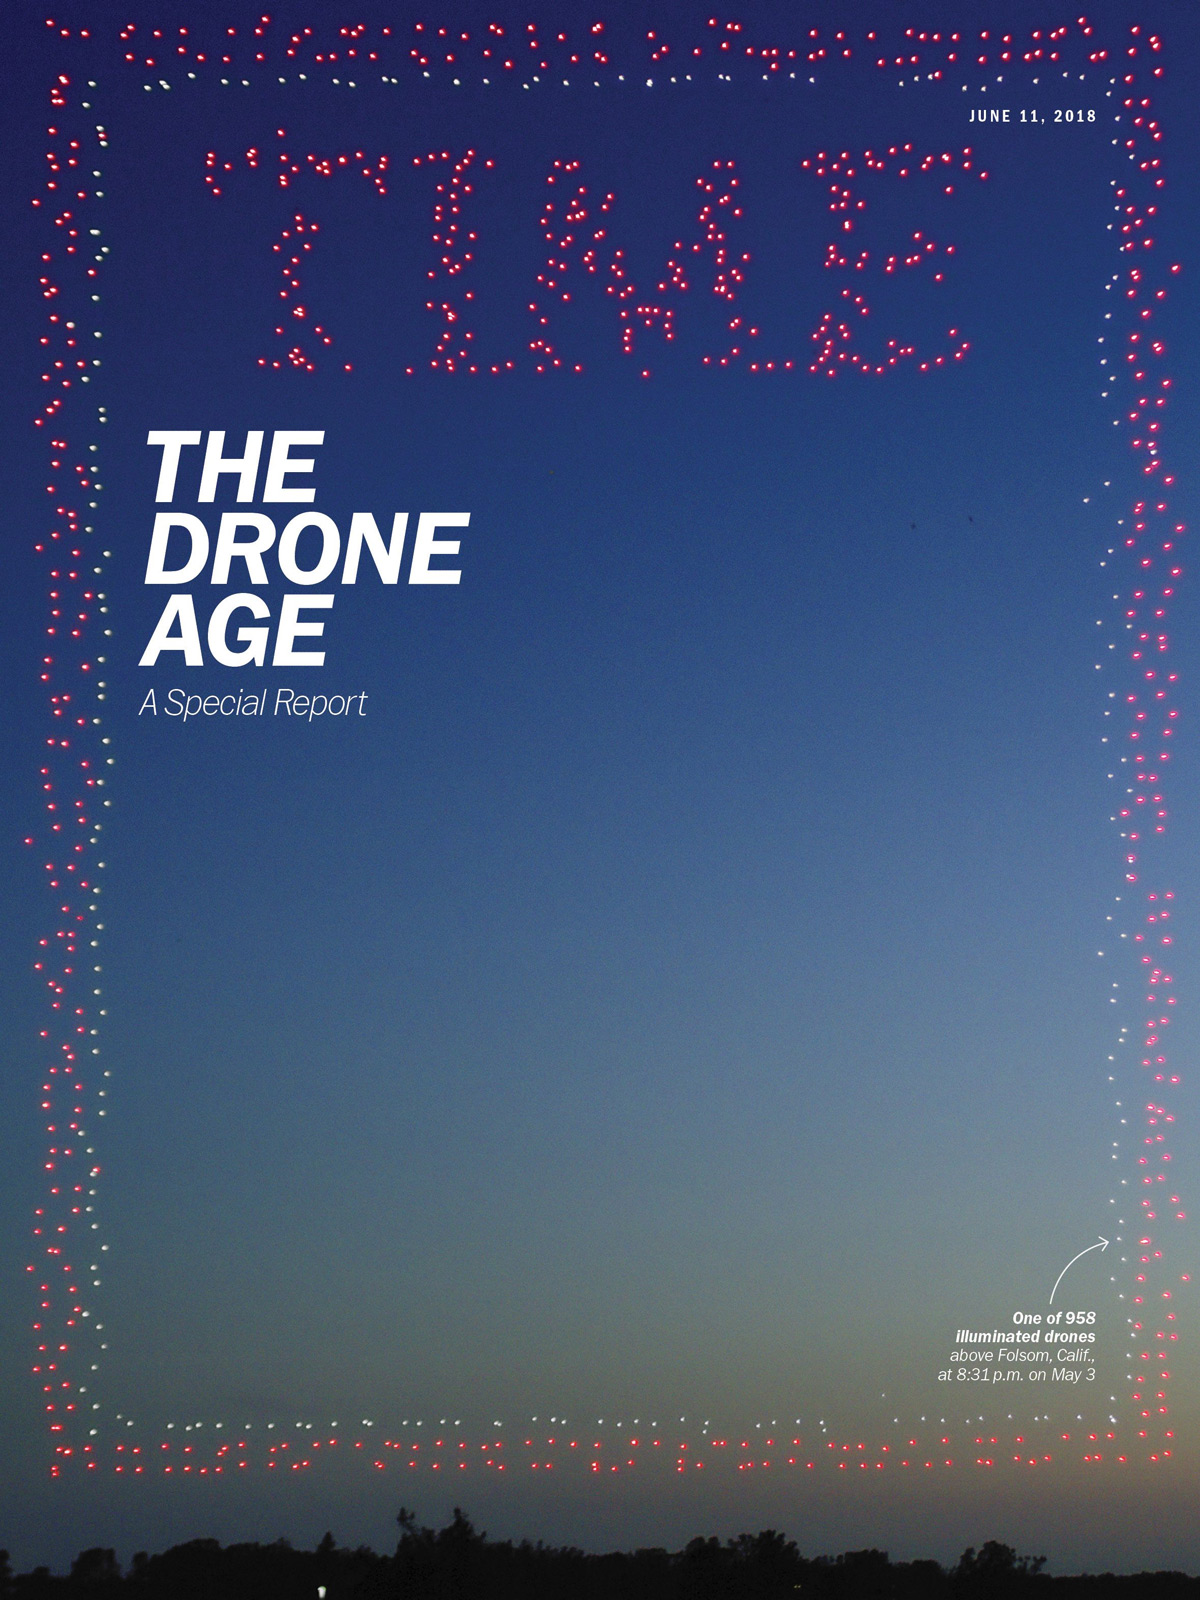 TIME Magazine cover (June 11, 2018 issue)